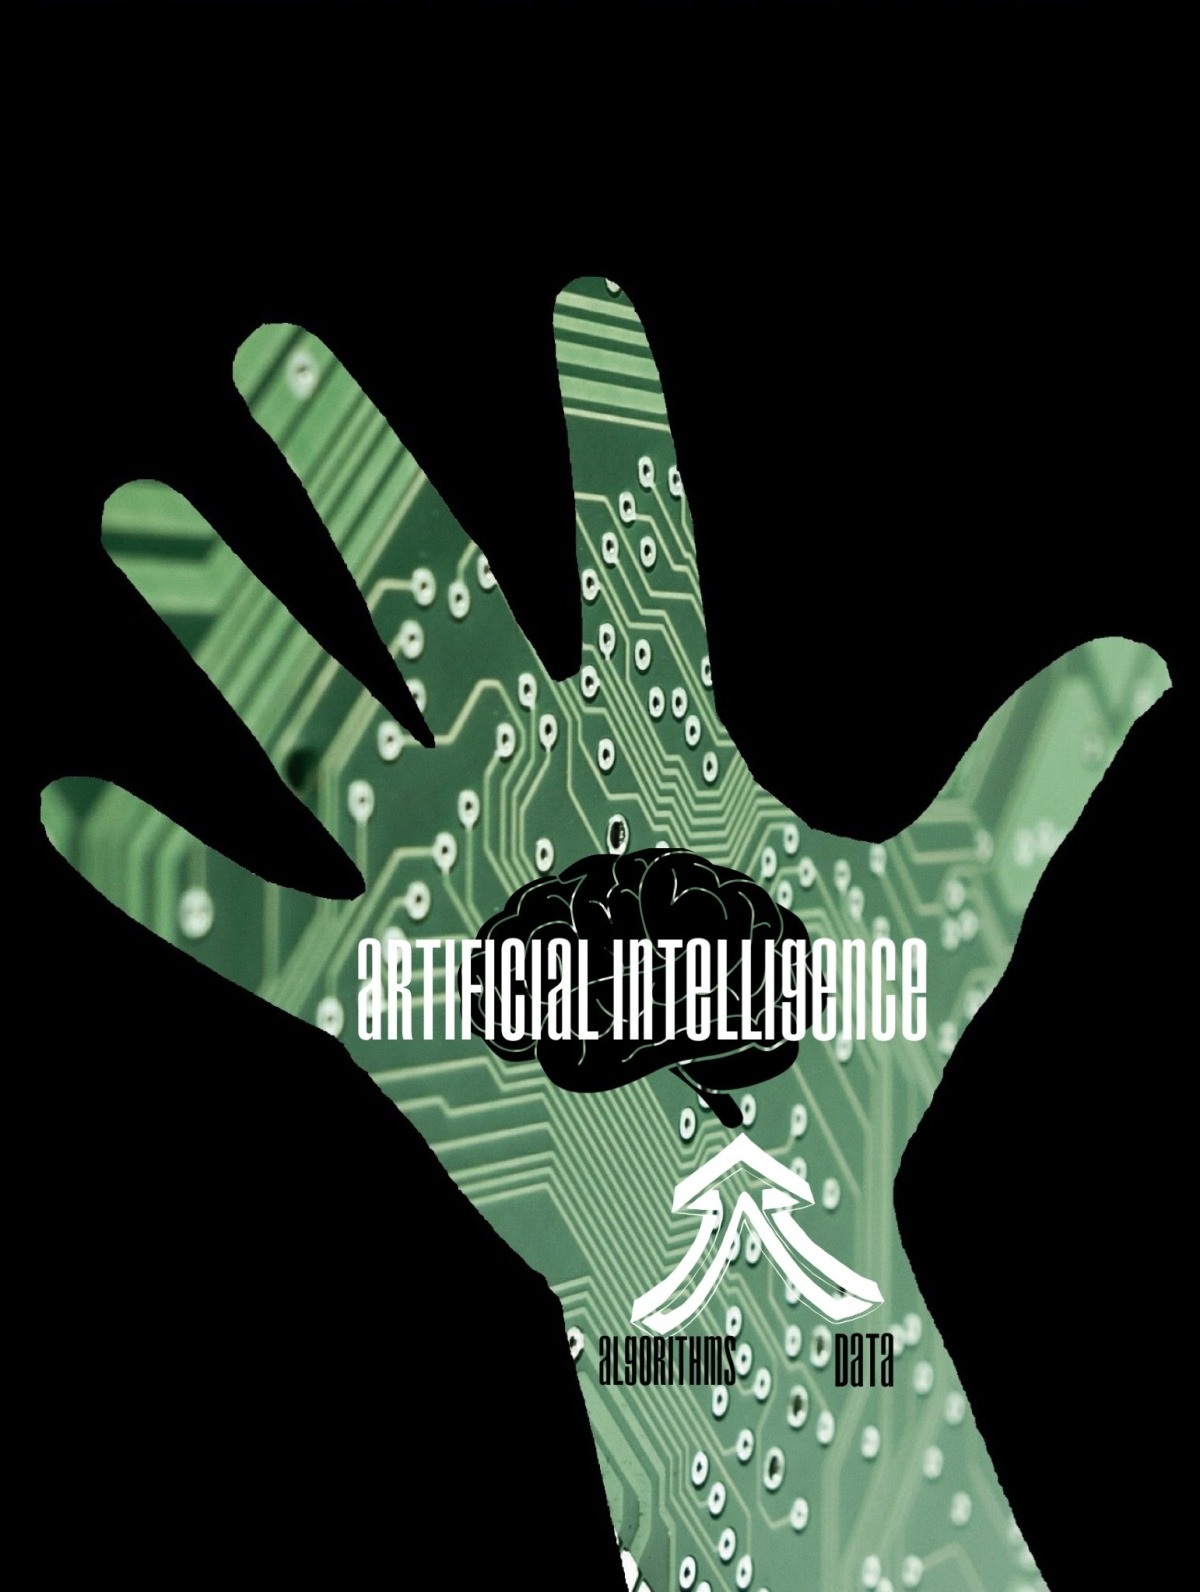 5 Questions to Ask About ArtificialIntelligence